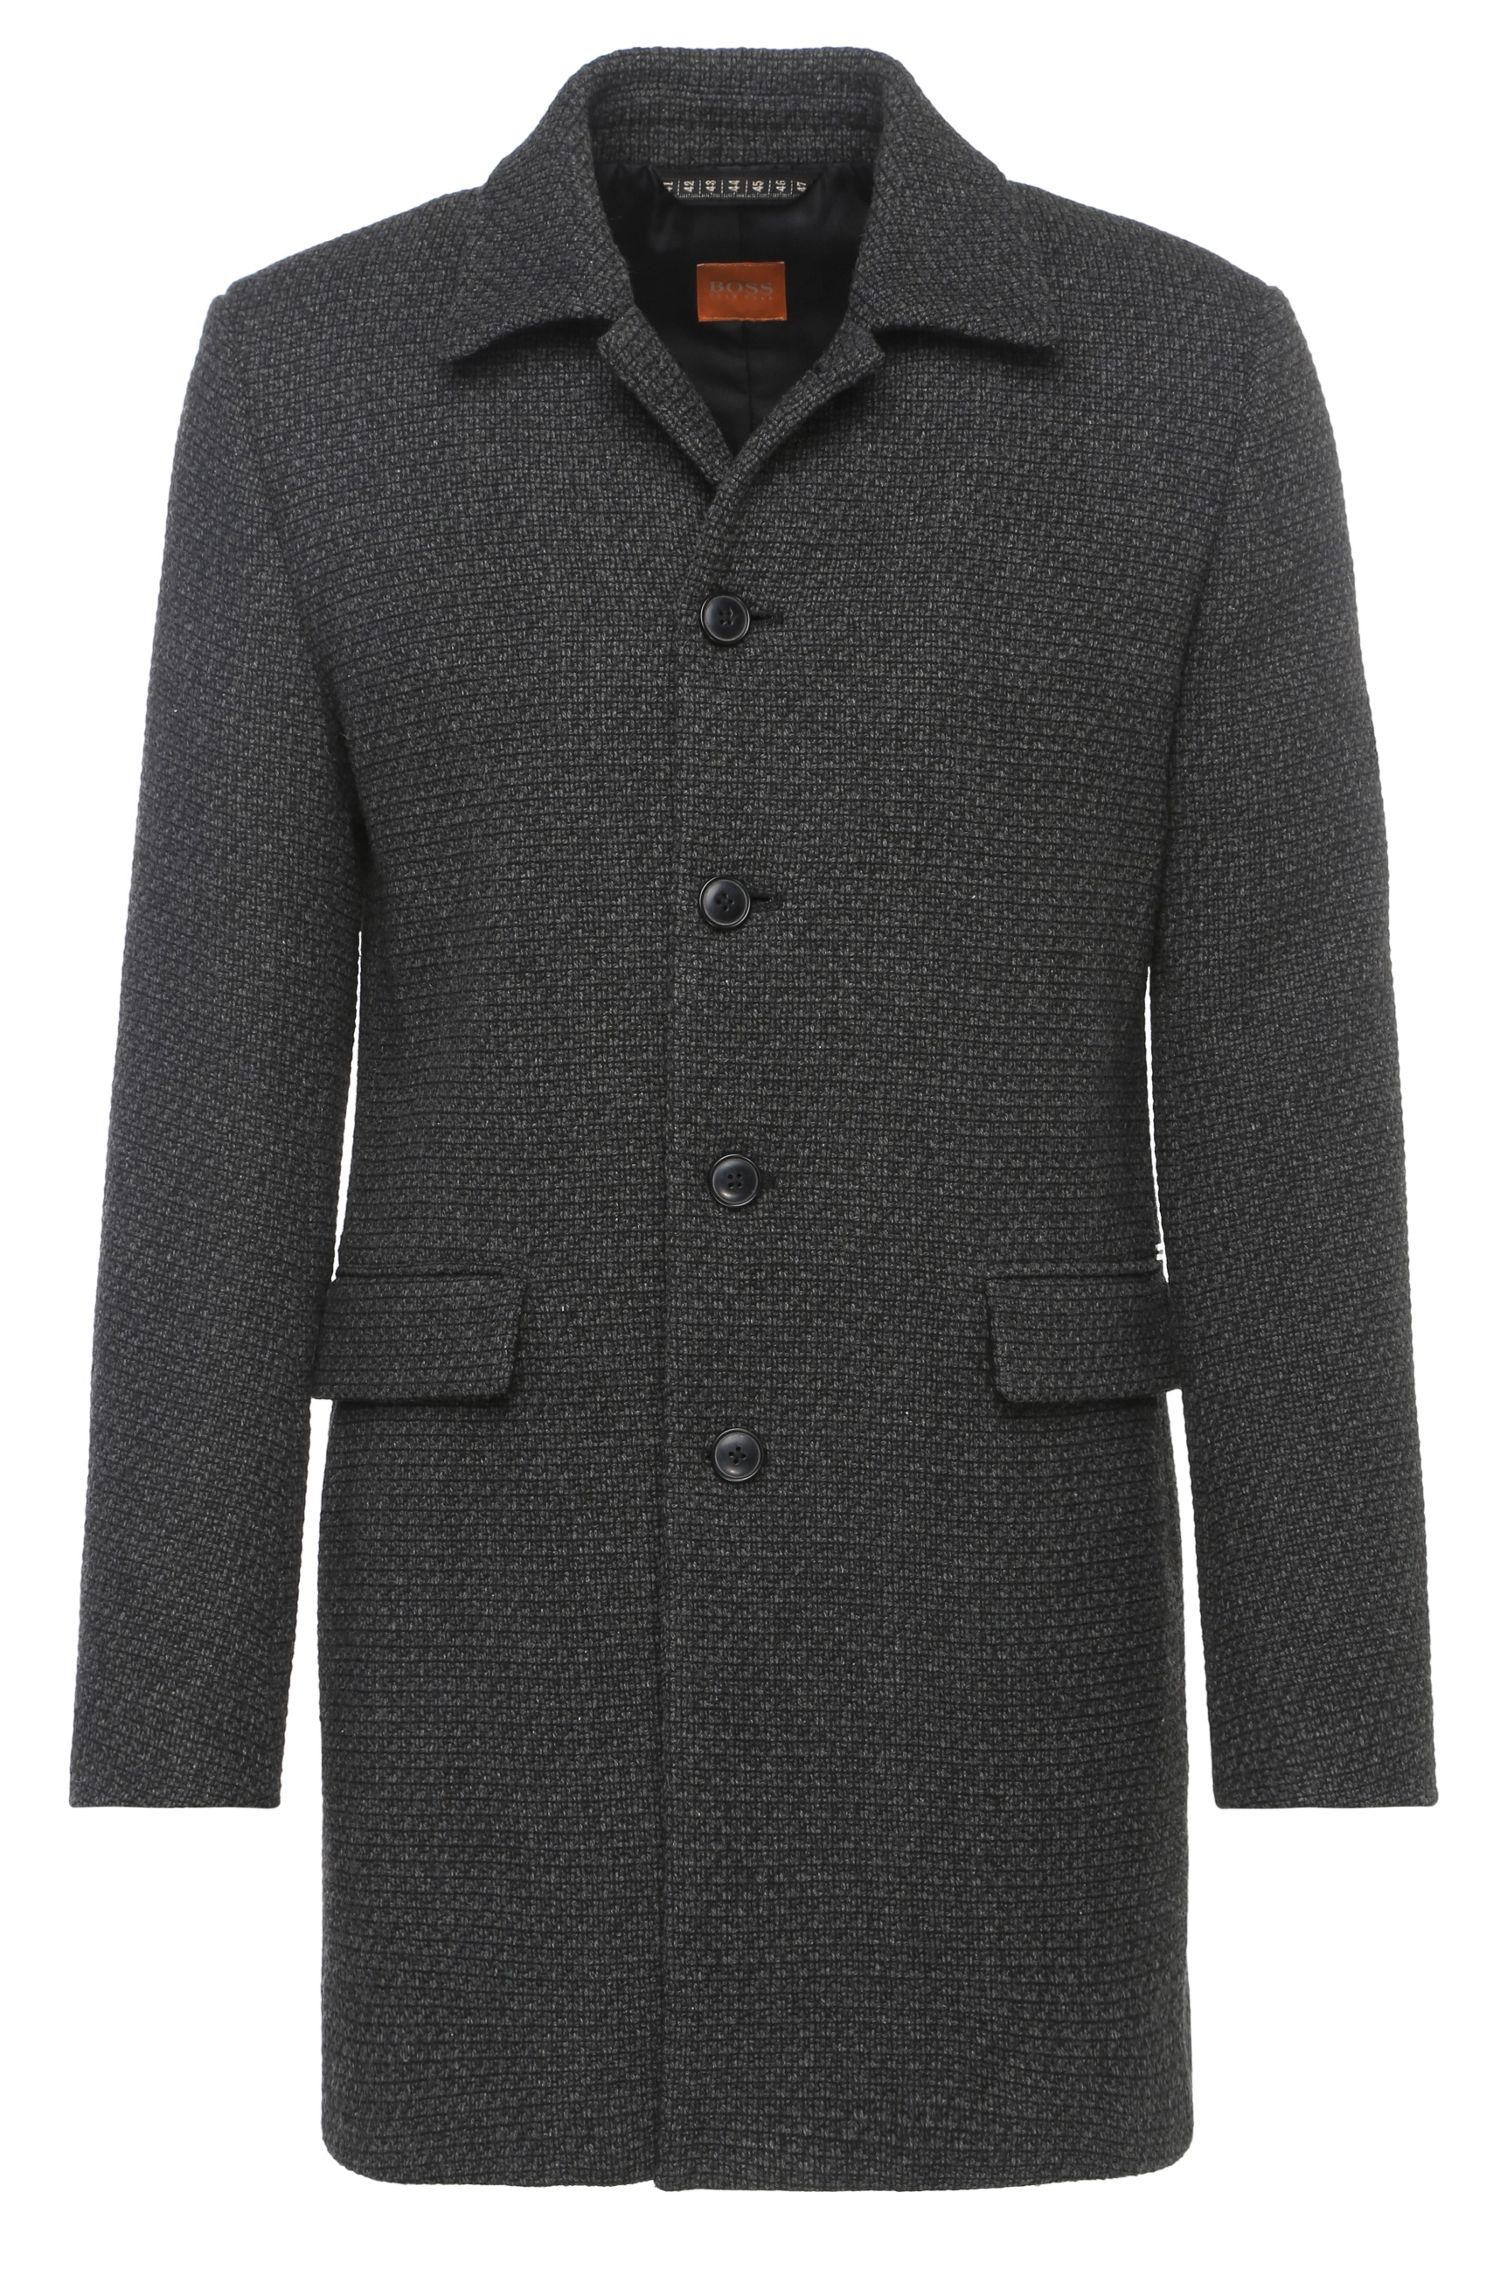 'Bodhy' | Wool Blend Tweed Car Coat